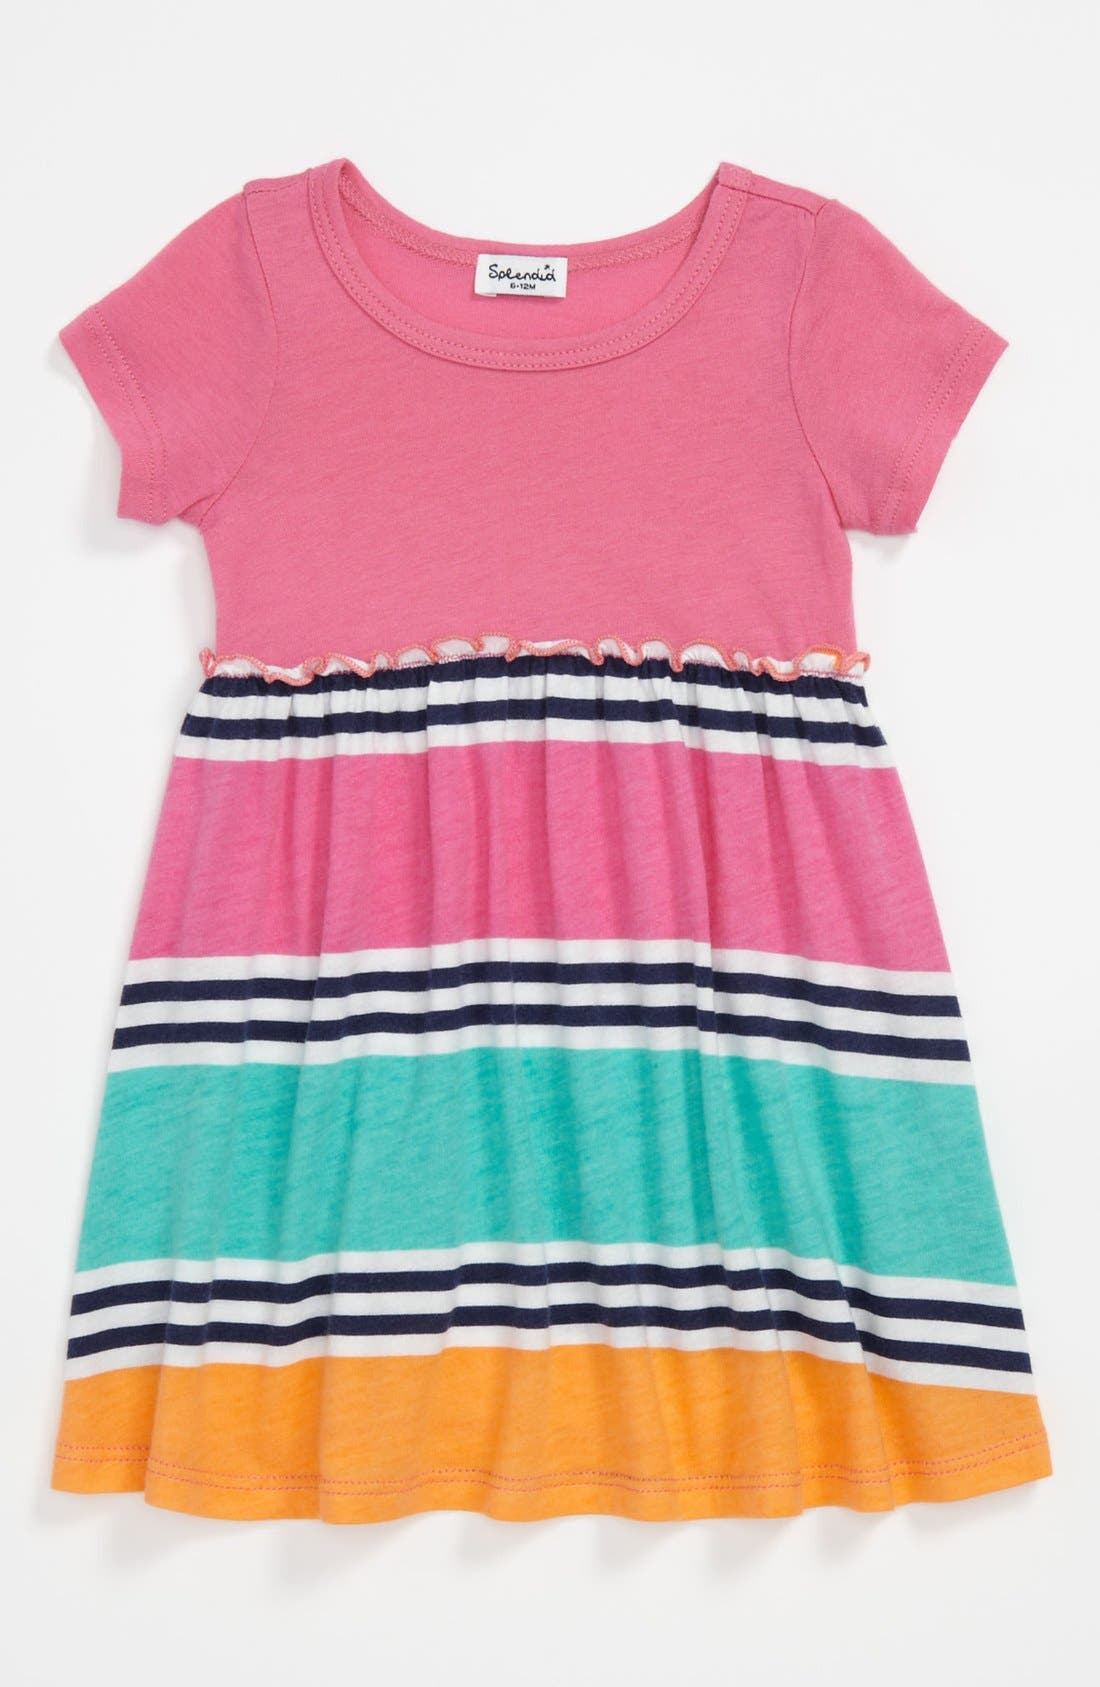 Main Image - Splendid 'Cabana Stripe' Dress (Baby)